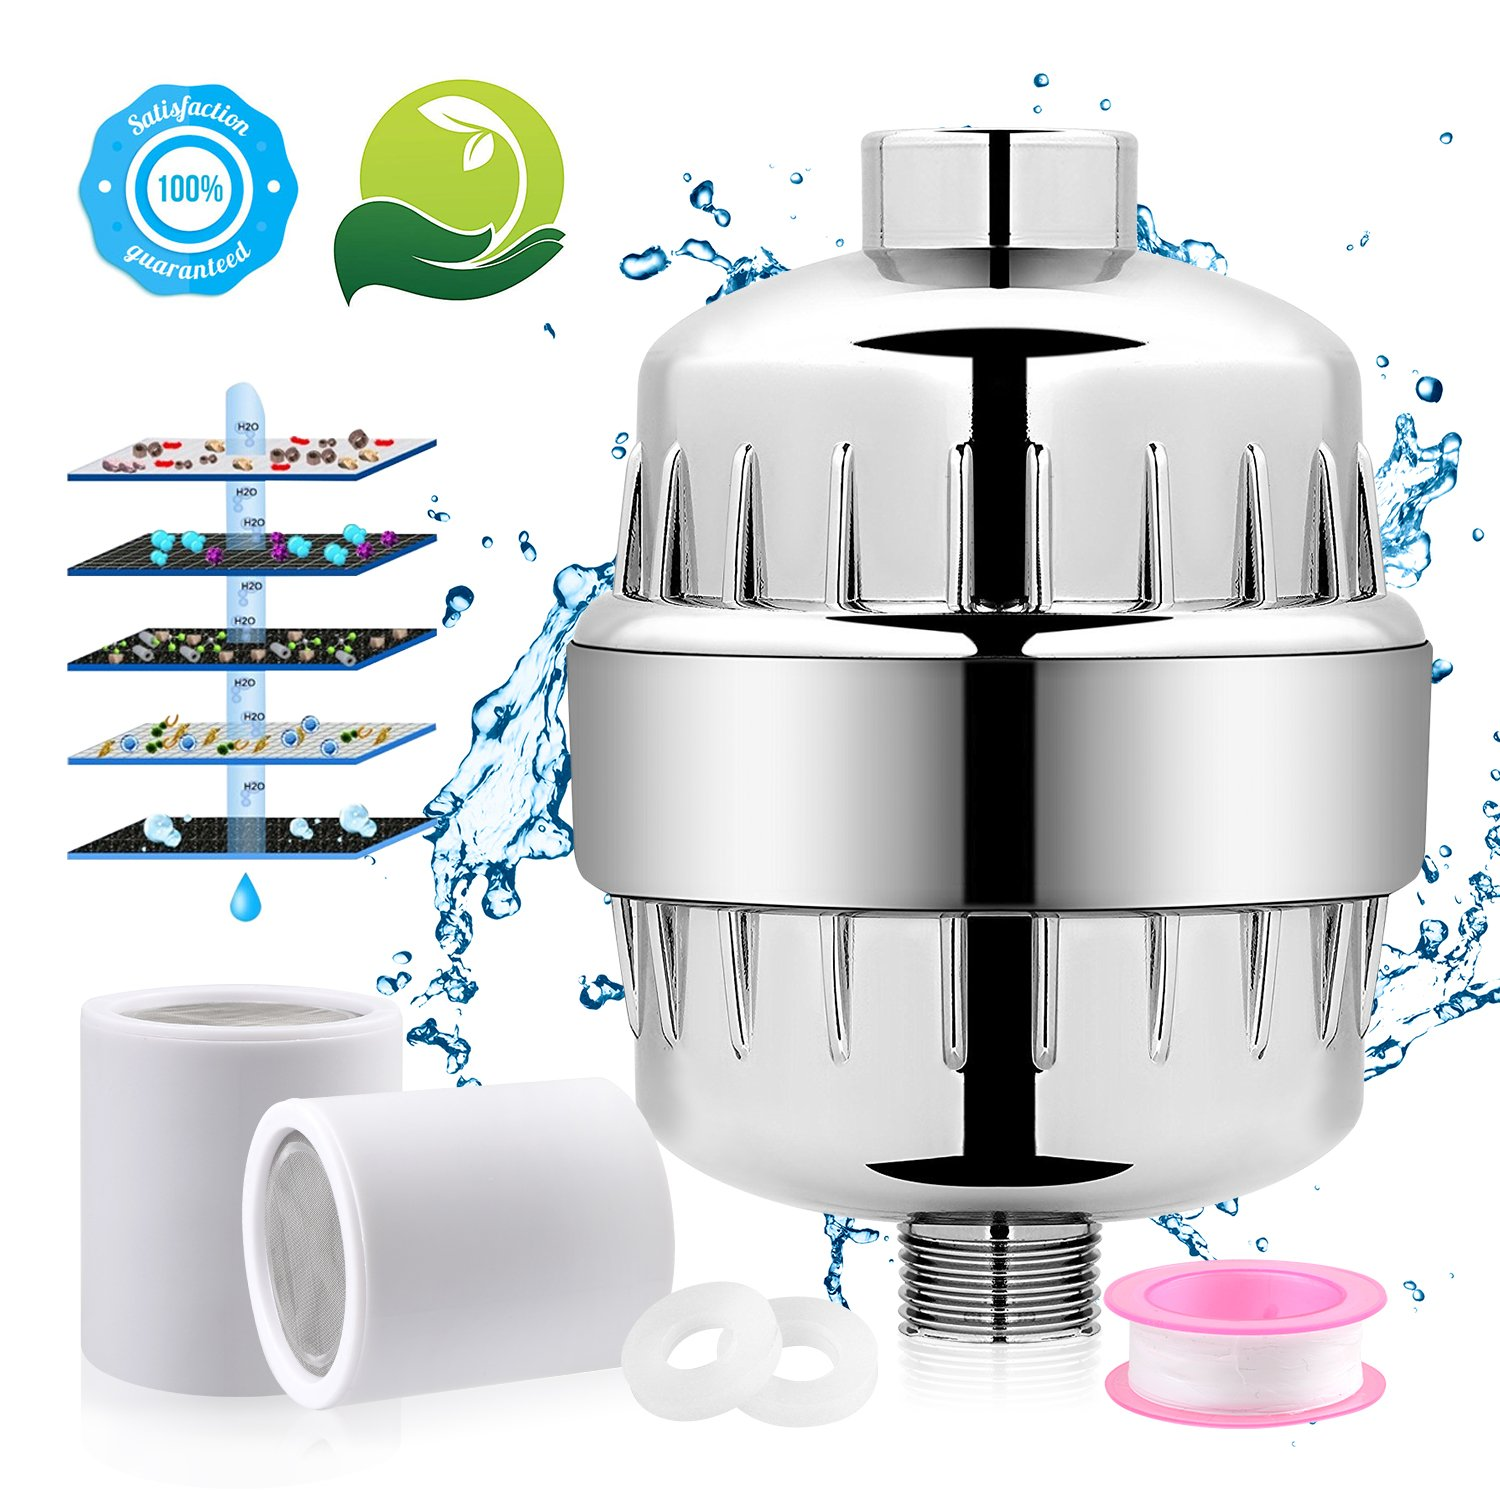 10 Stages Professional Shower Head Water Filter for All Shower Head, 2 Cartridges Included ¨CRemoving Chlorine, Heavy Metals, Impuriies and Unpleasant Odor, Prevents Hair & Skin Dryness